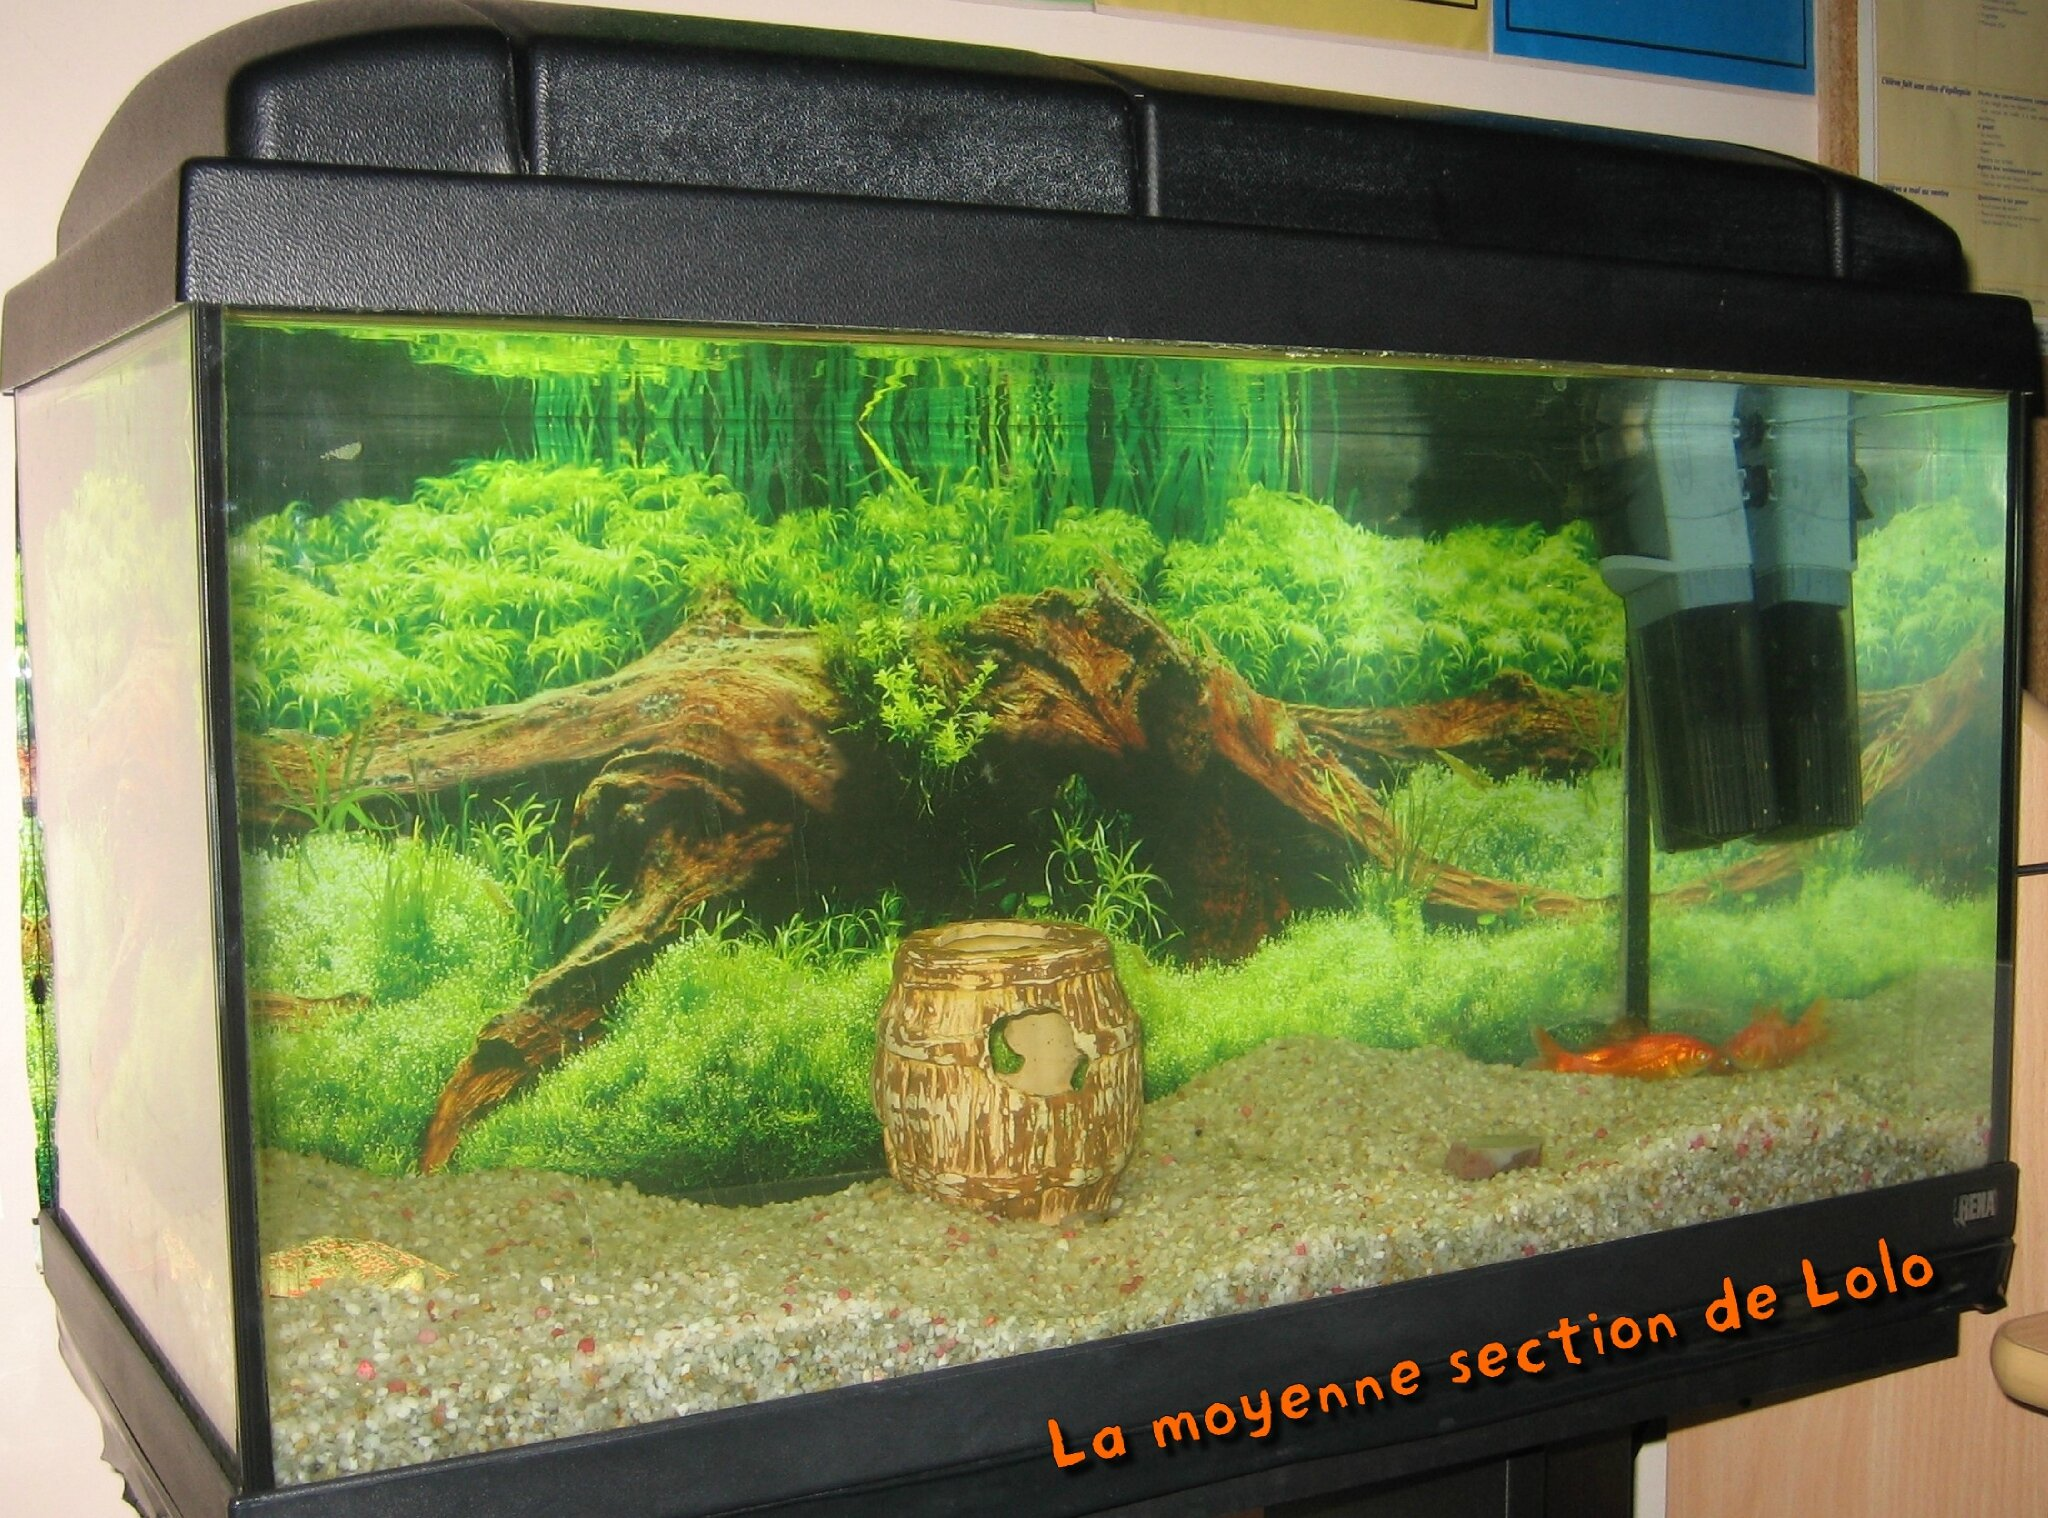 Le petit poisson rouge la moyenne section de lolo for Avoir un aquarium poisson rouge